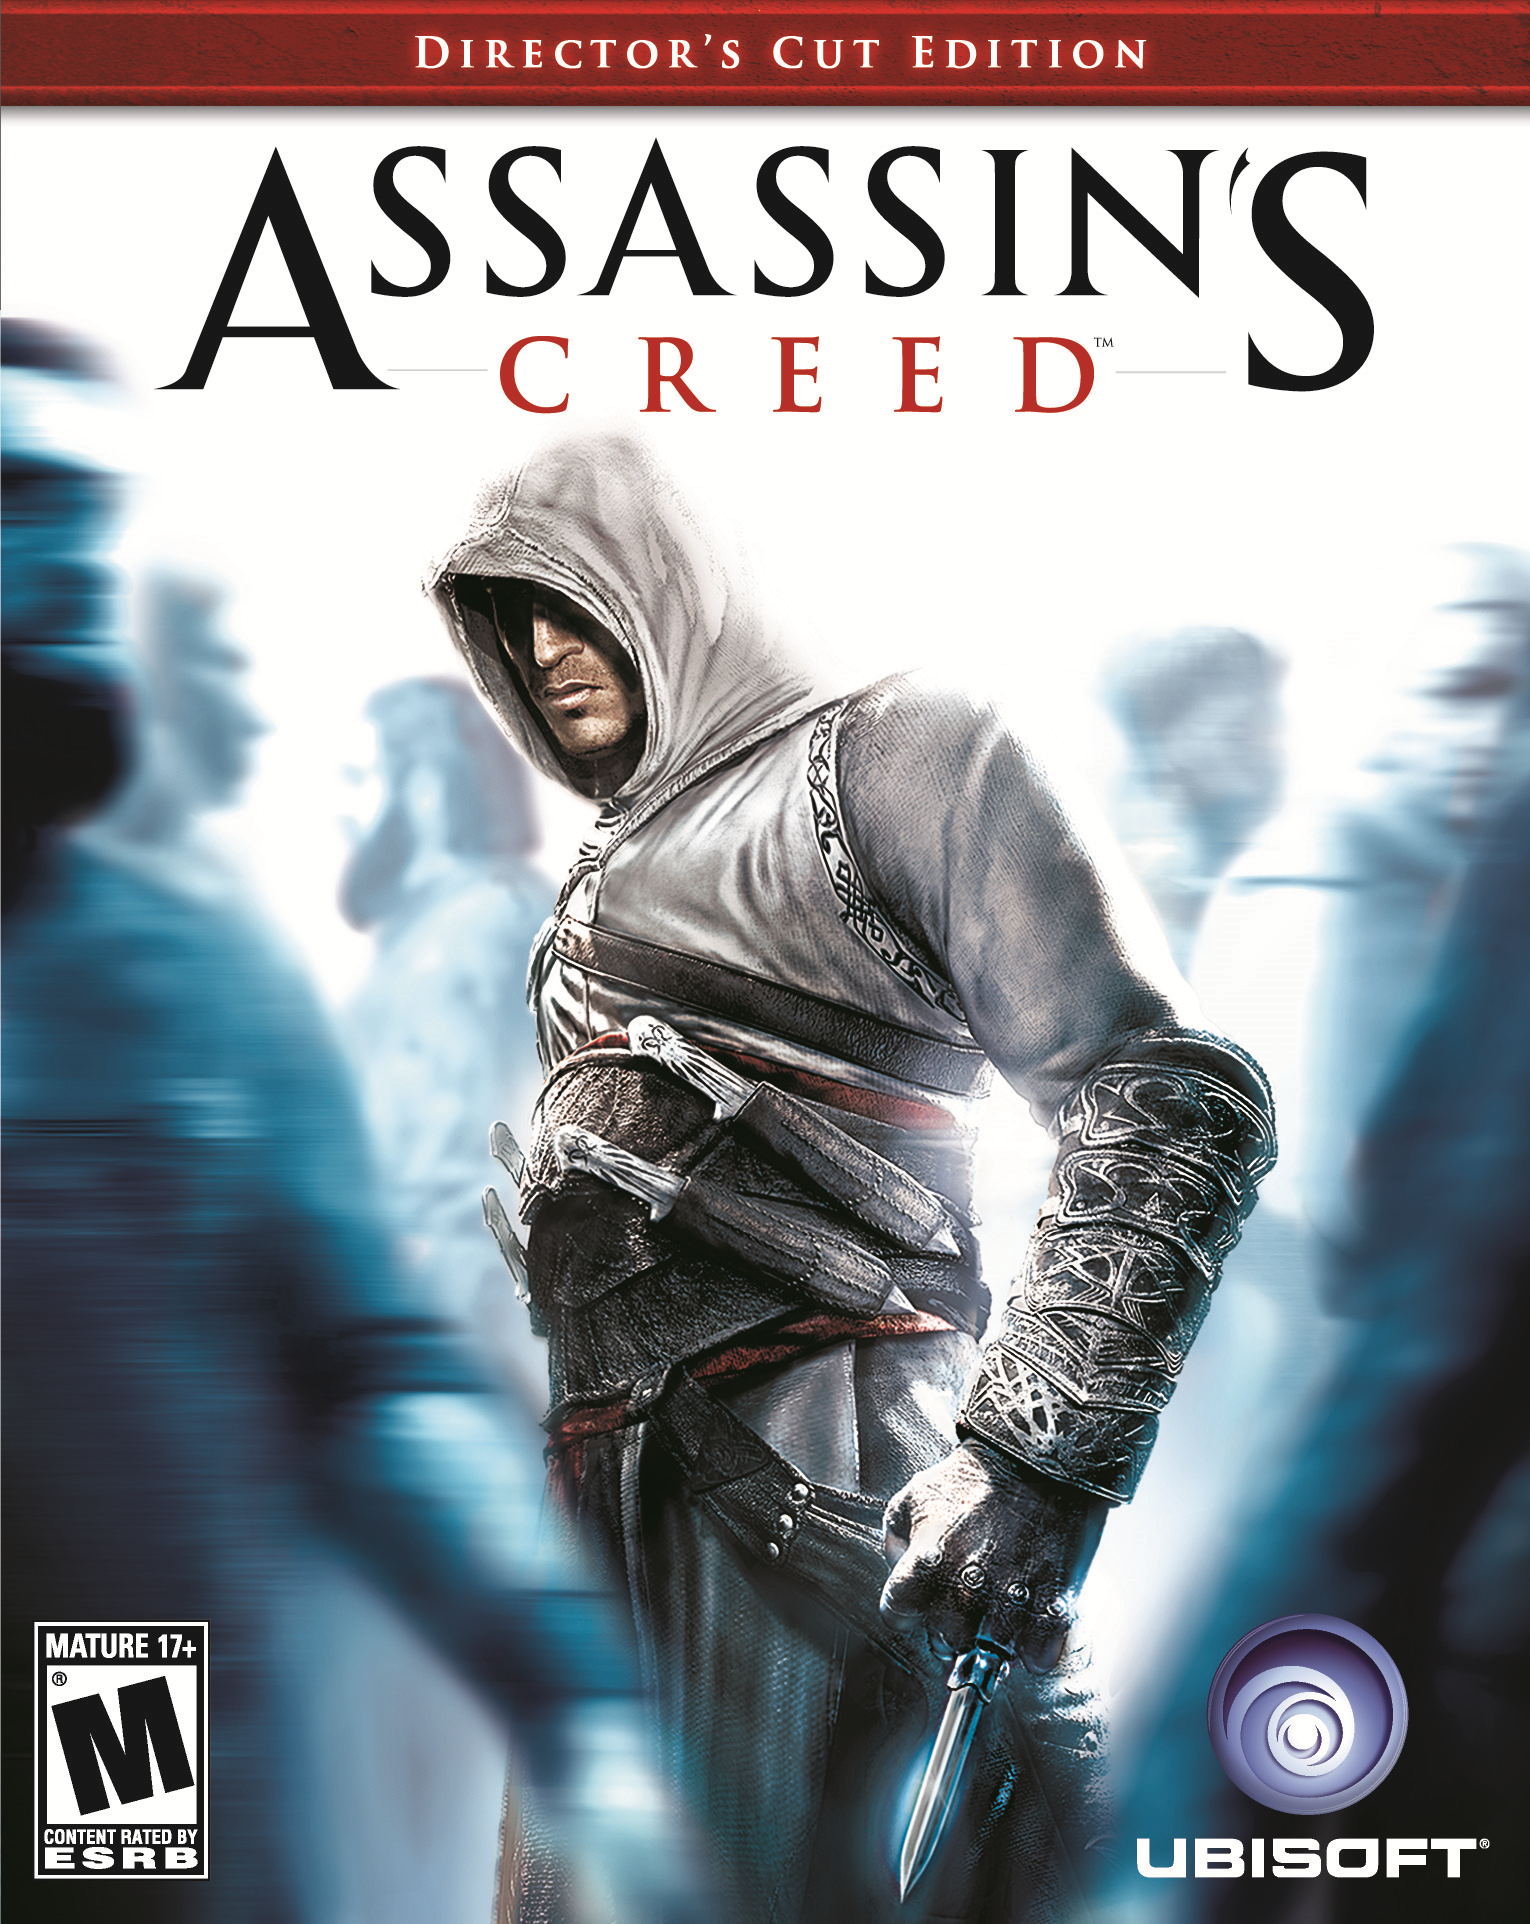 Assassin's Creed - Director's Cut Under blast sales Game Ranking integrated 1st place Edition Code Online